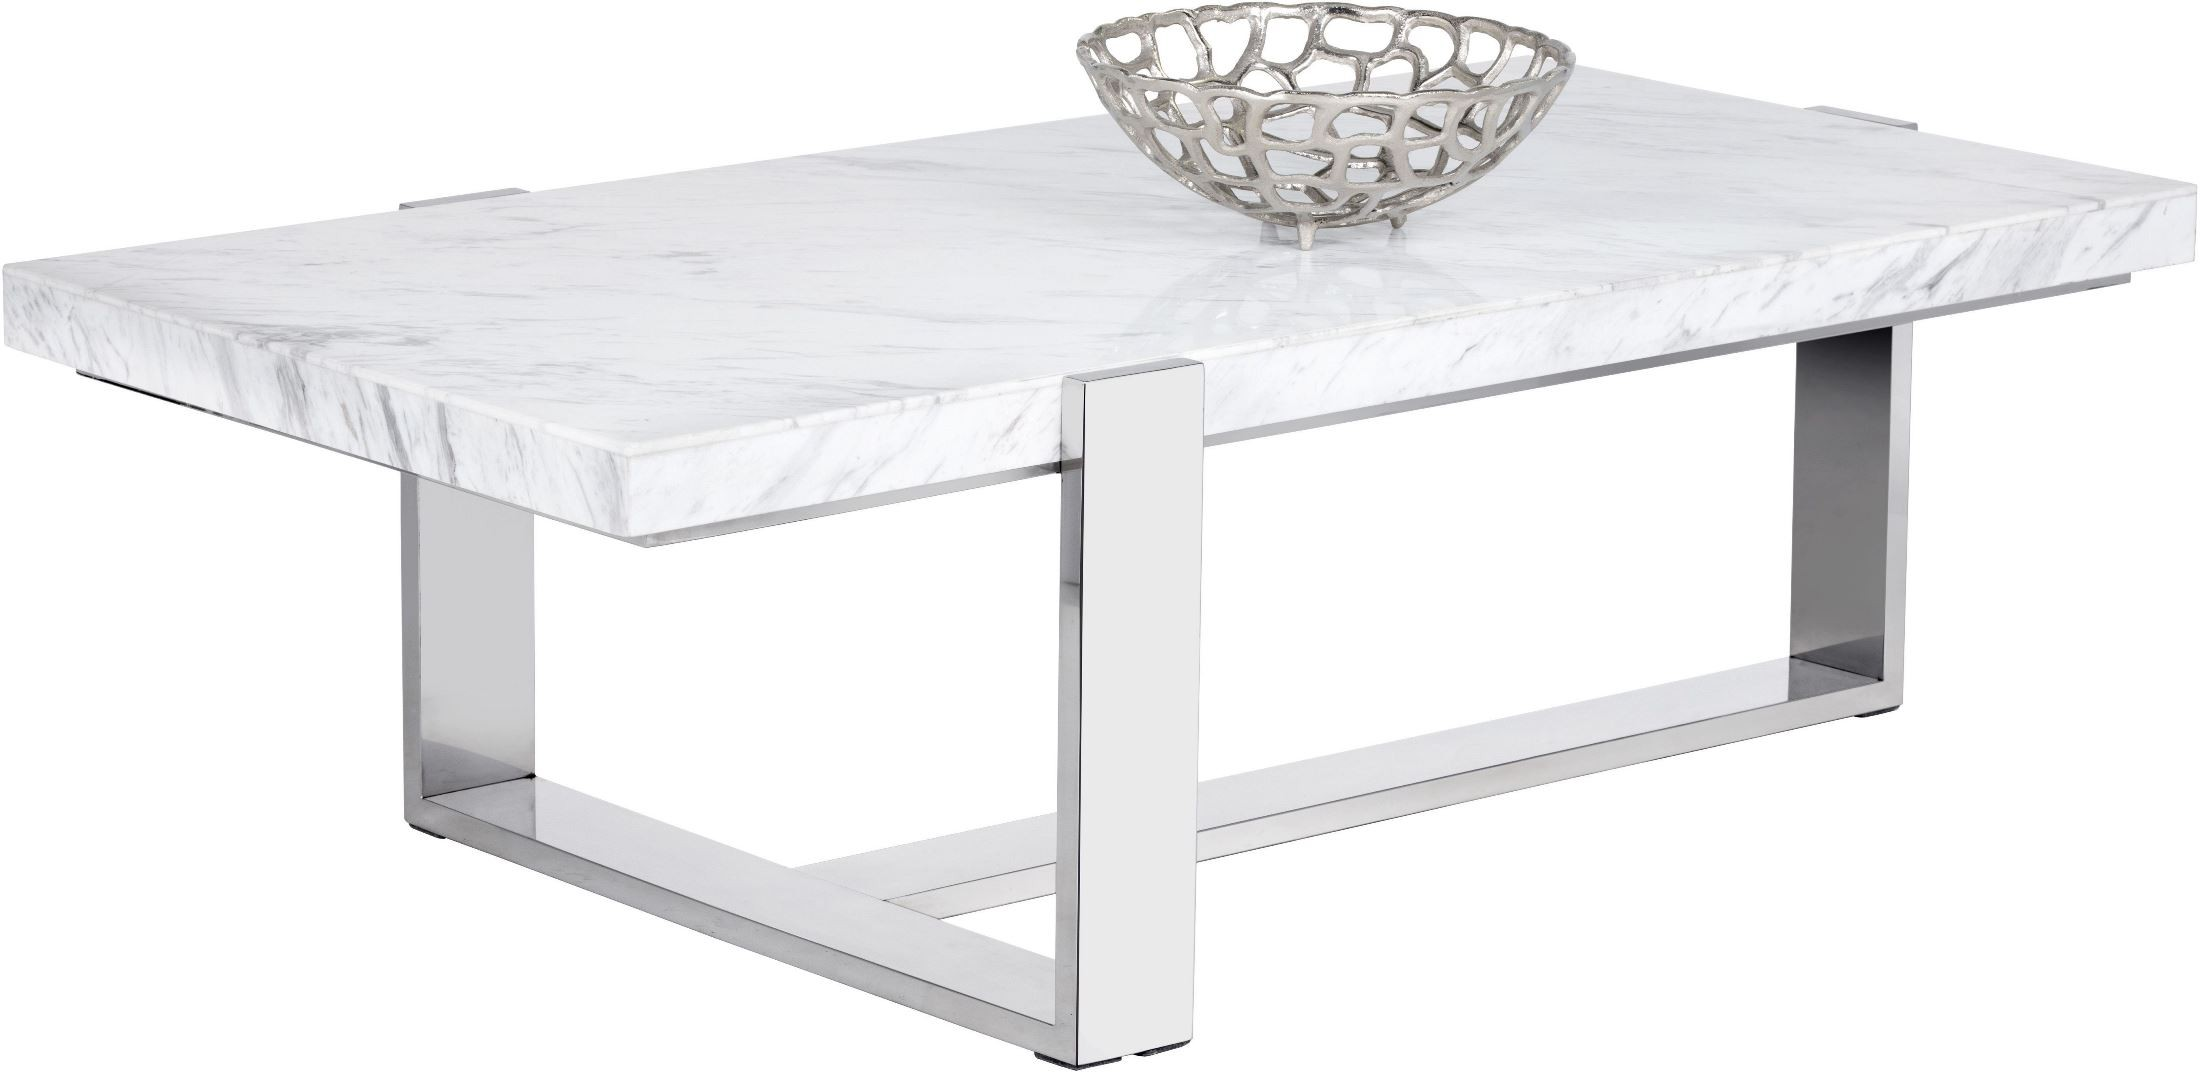 Tribecca white marble rectangular coffee table 101294 for Marble top coffee table rectangle